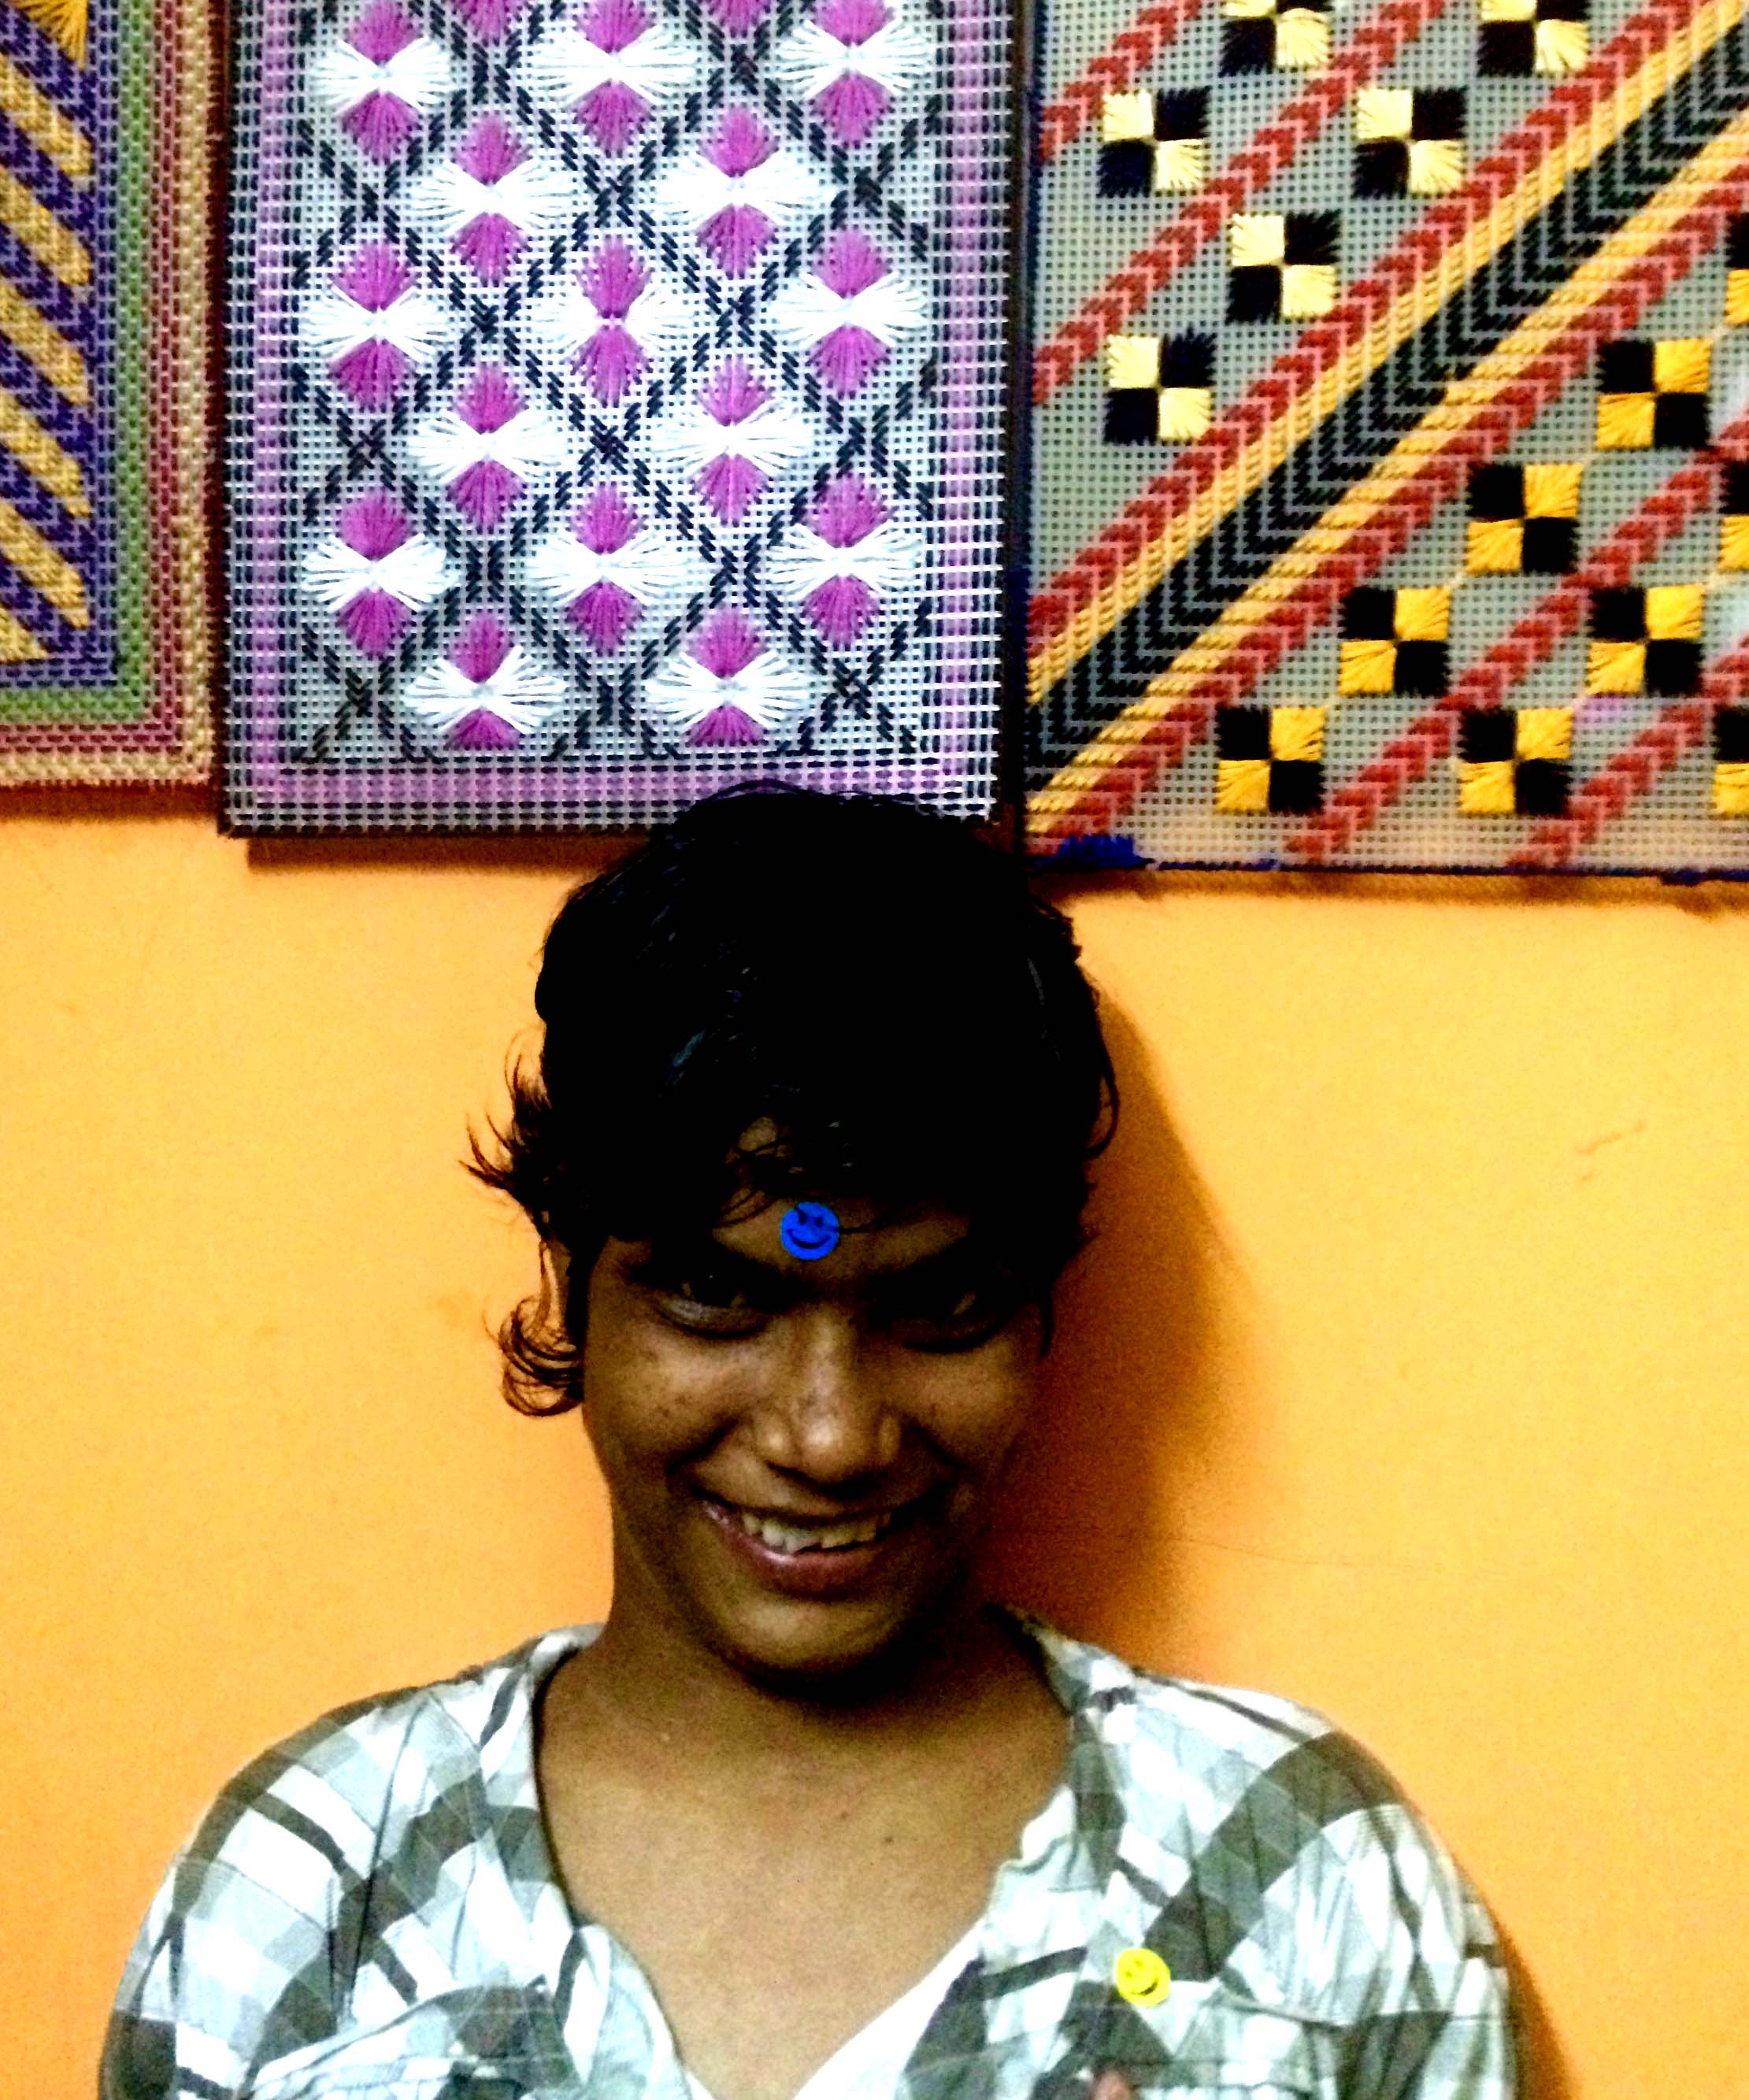 shuktara - Tamina smiley face